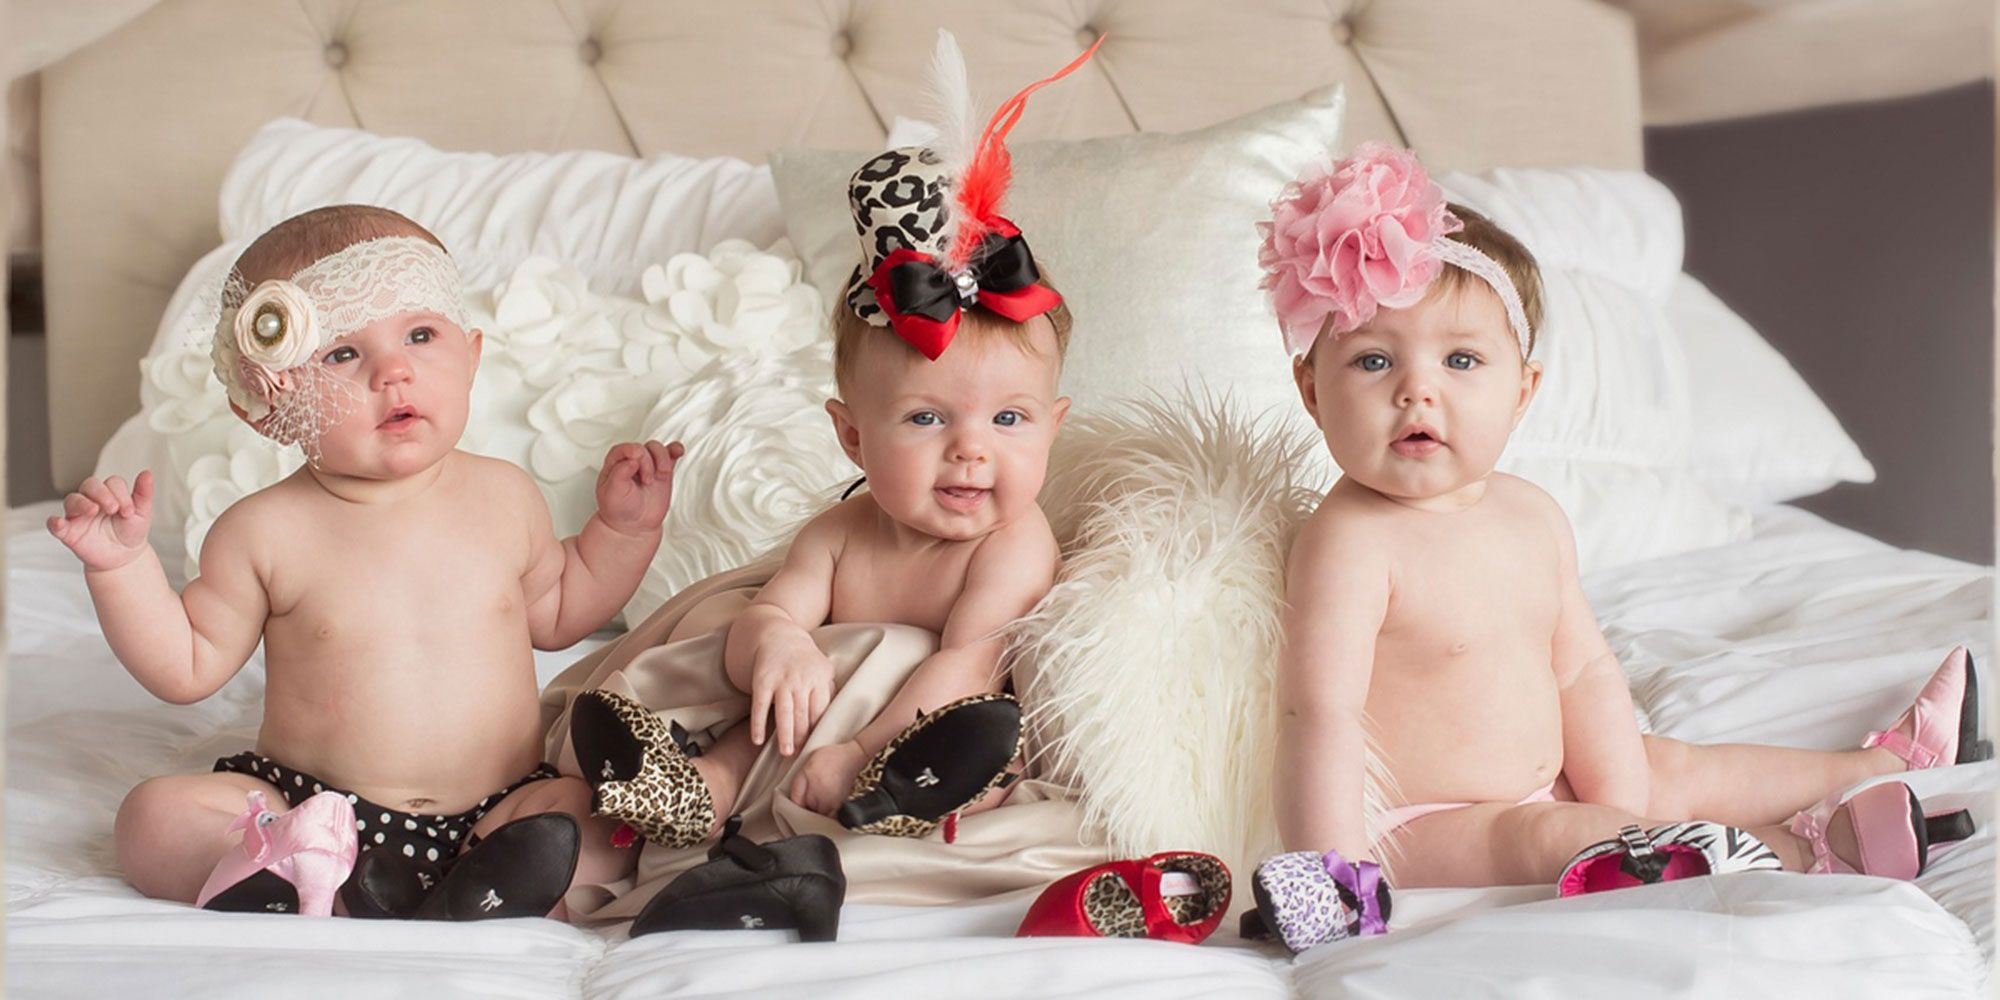 Childrens Company Slammed for Selling High Heels to Babies — Yeah, You Read That Right